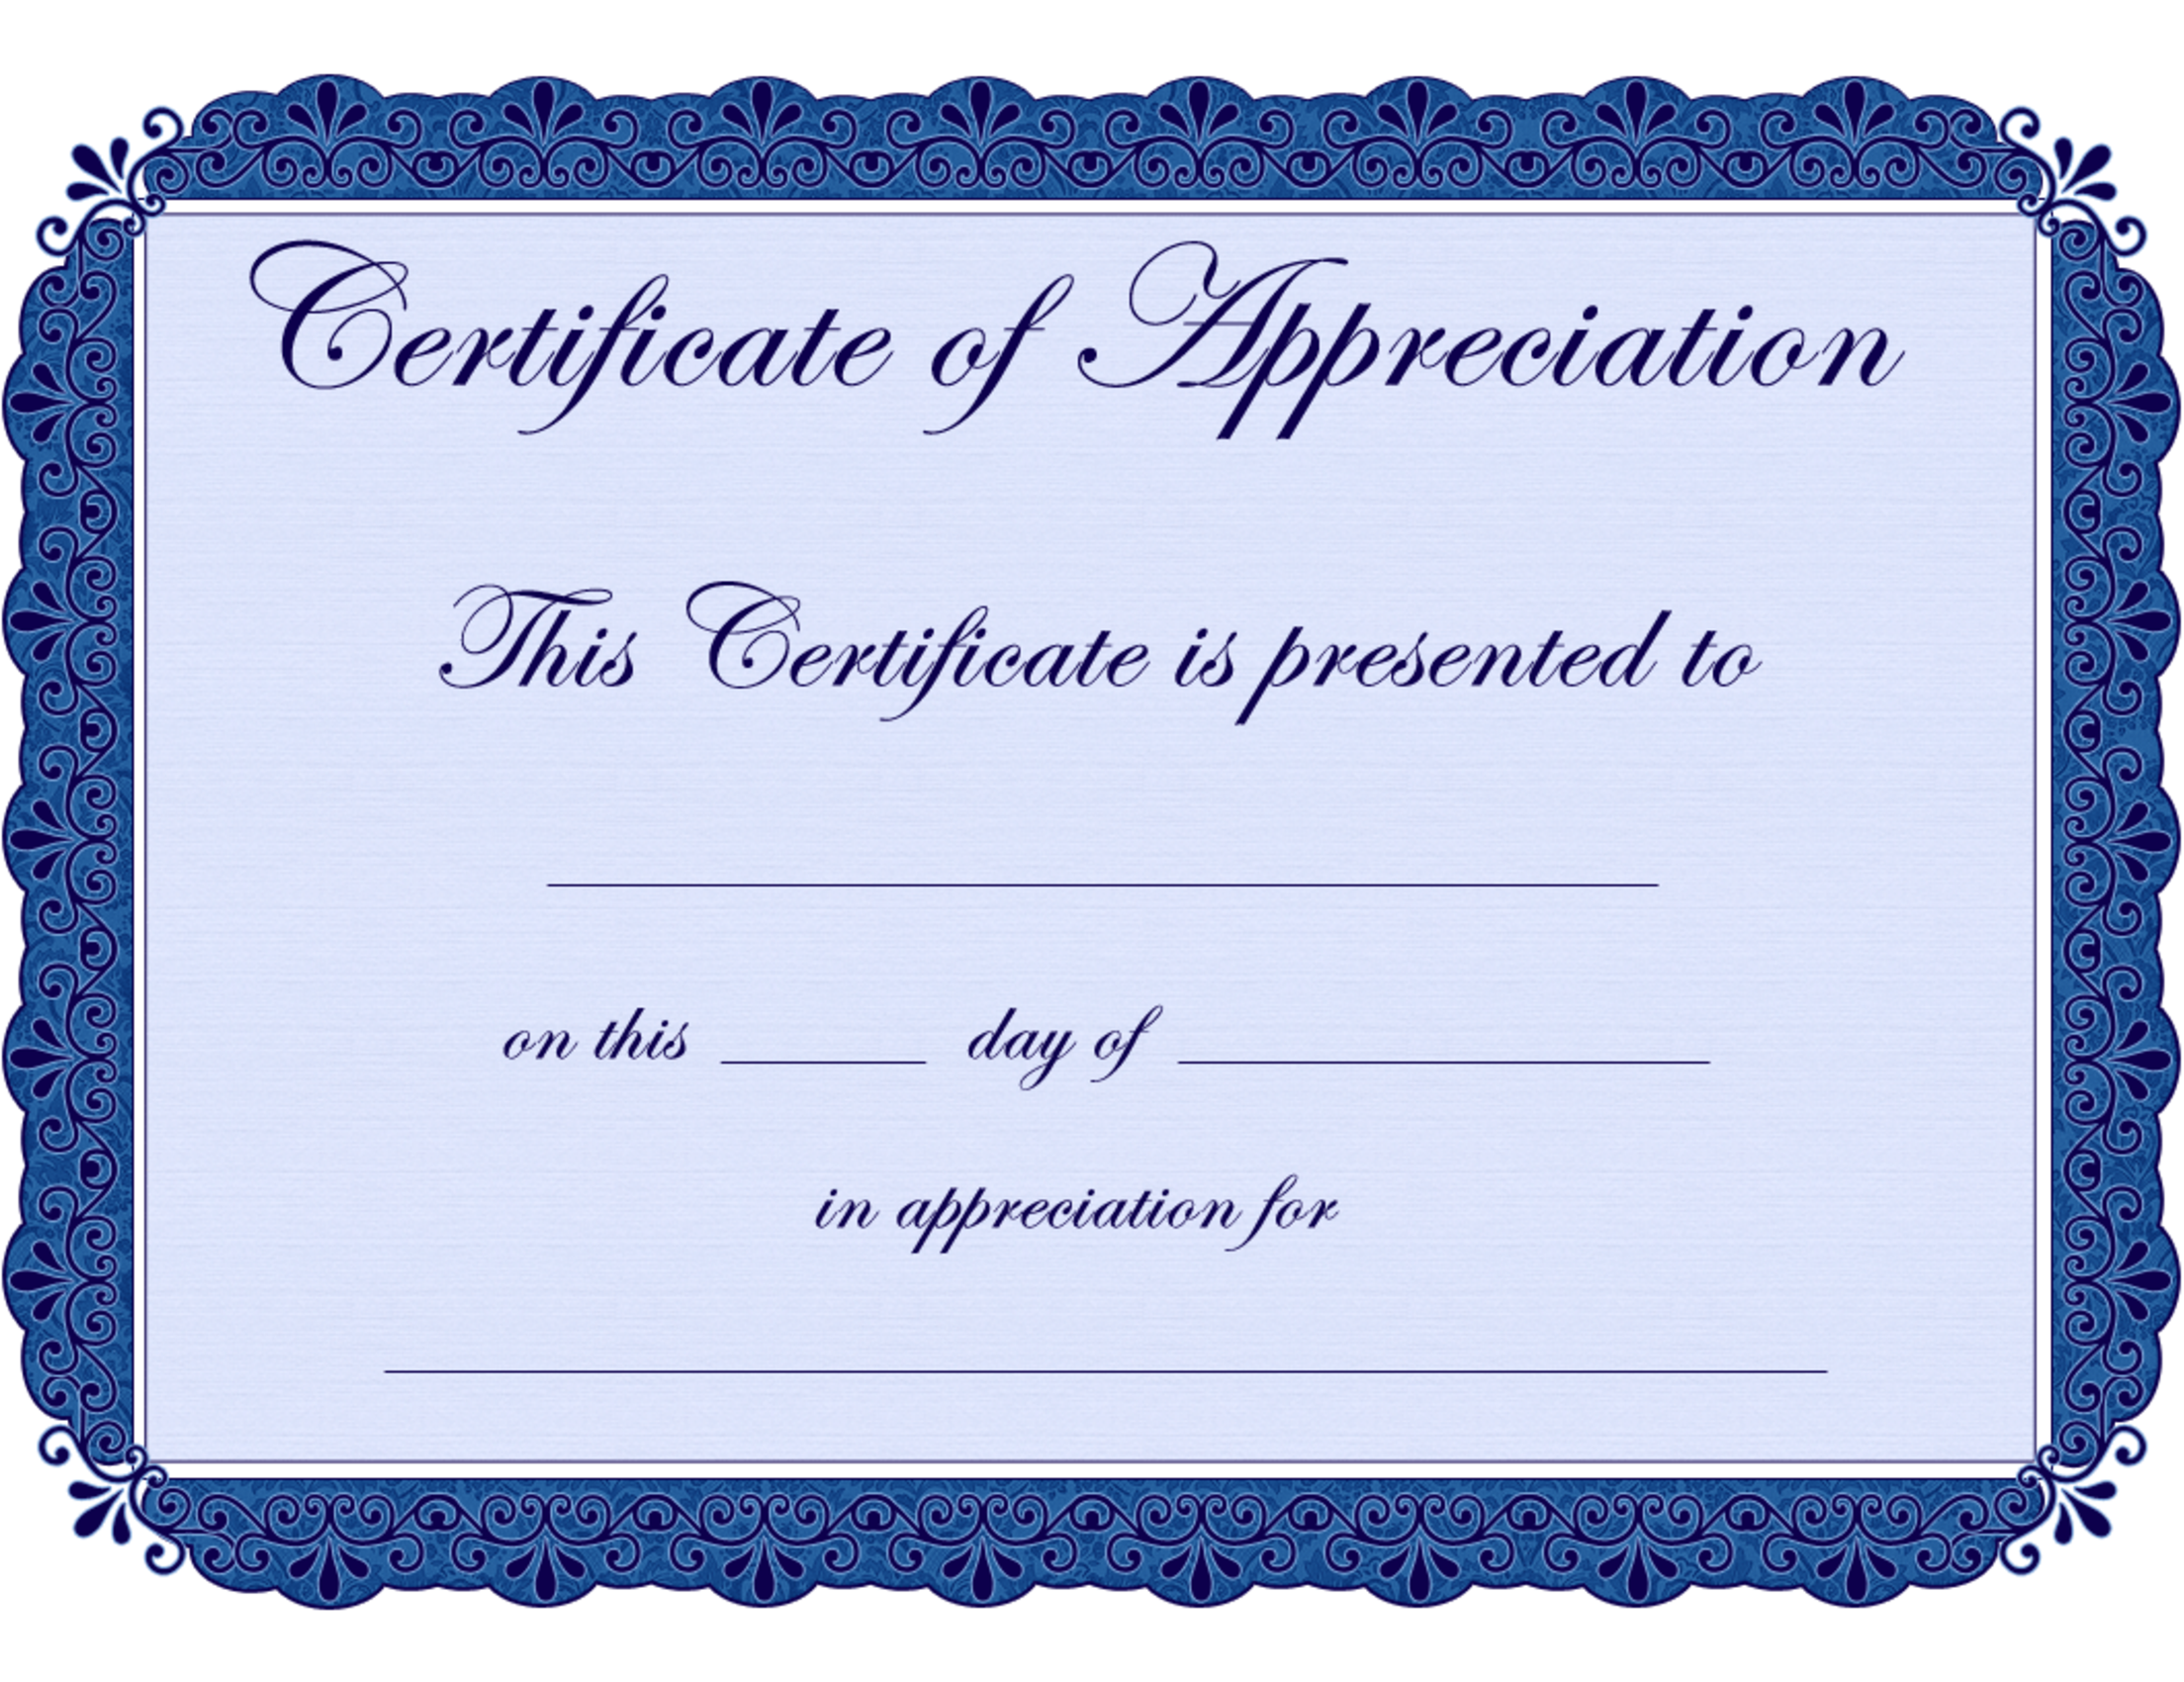 Free printable certificates certificate of appreciation certificate free printable certificates certificate of appreciation certificate yadclub Gallery